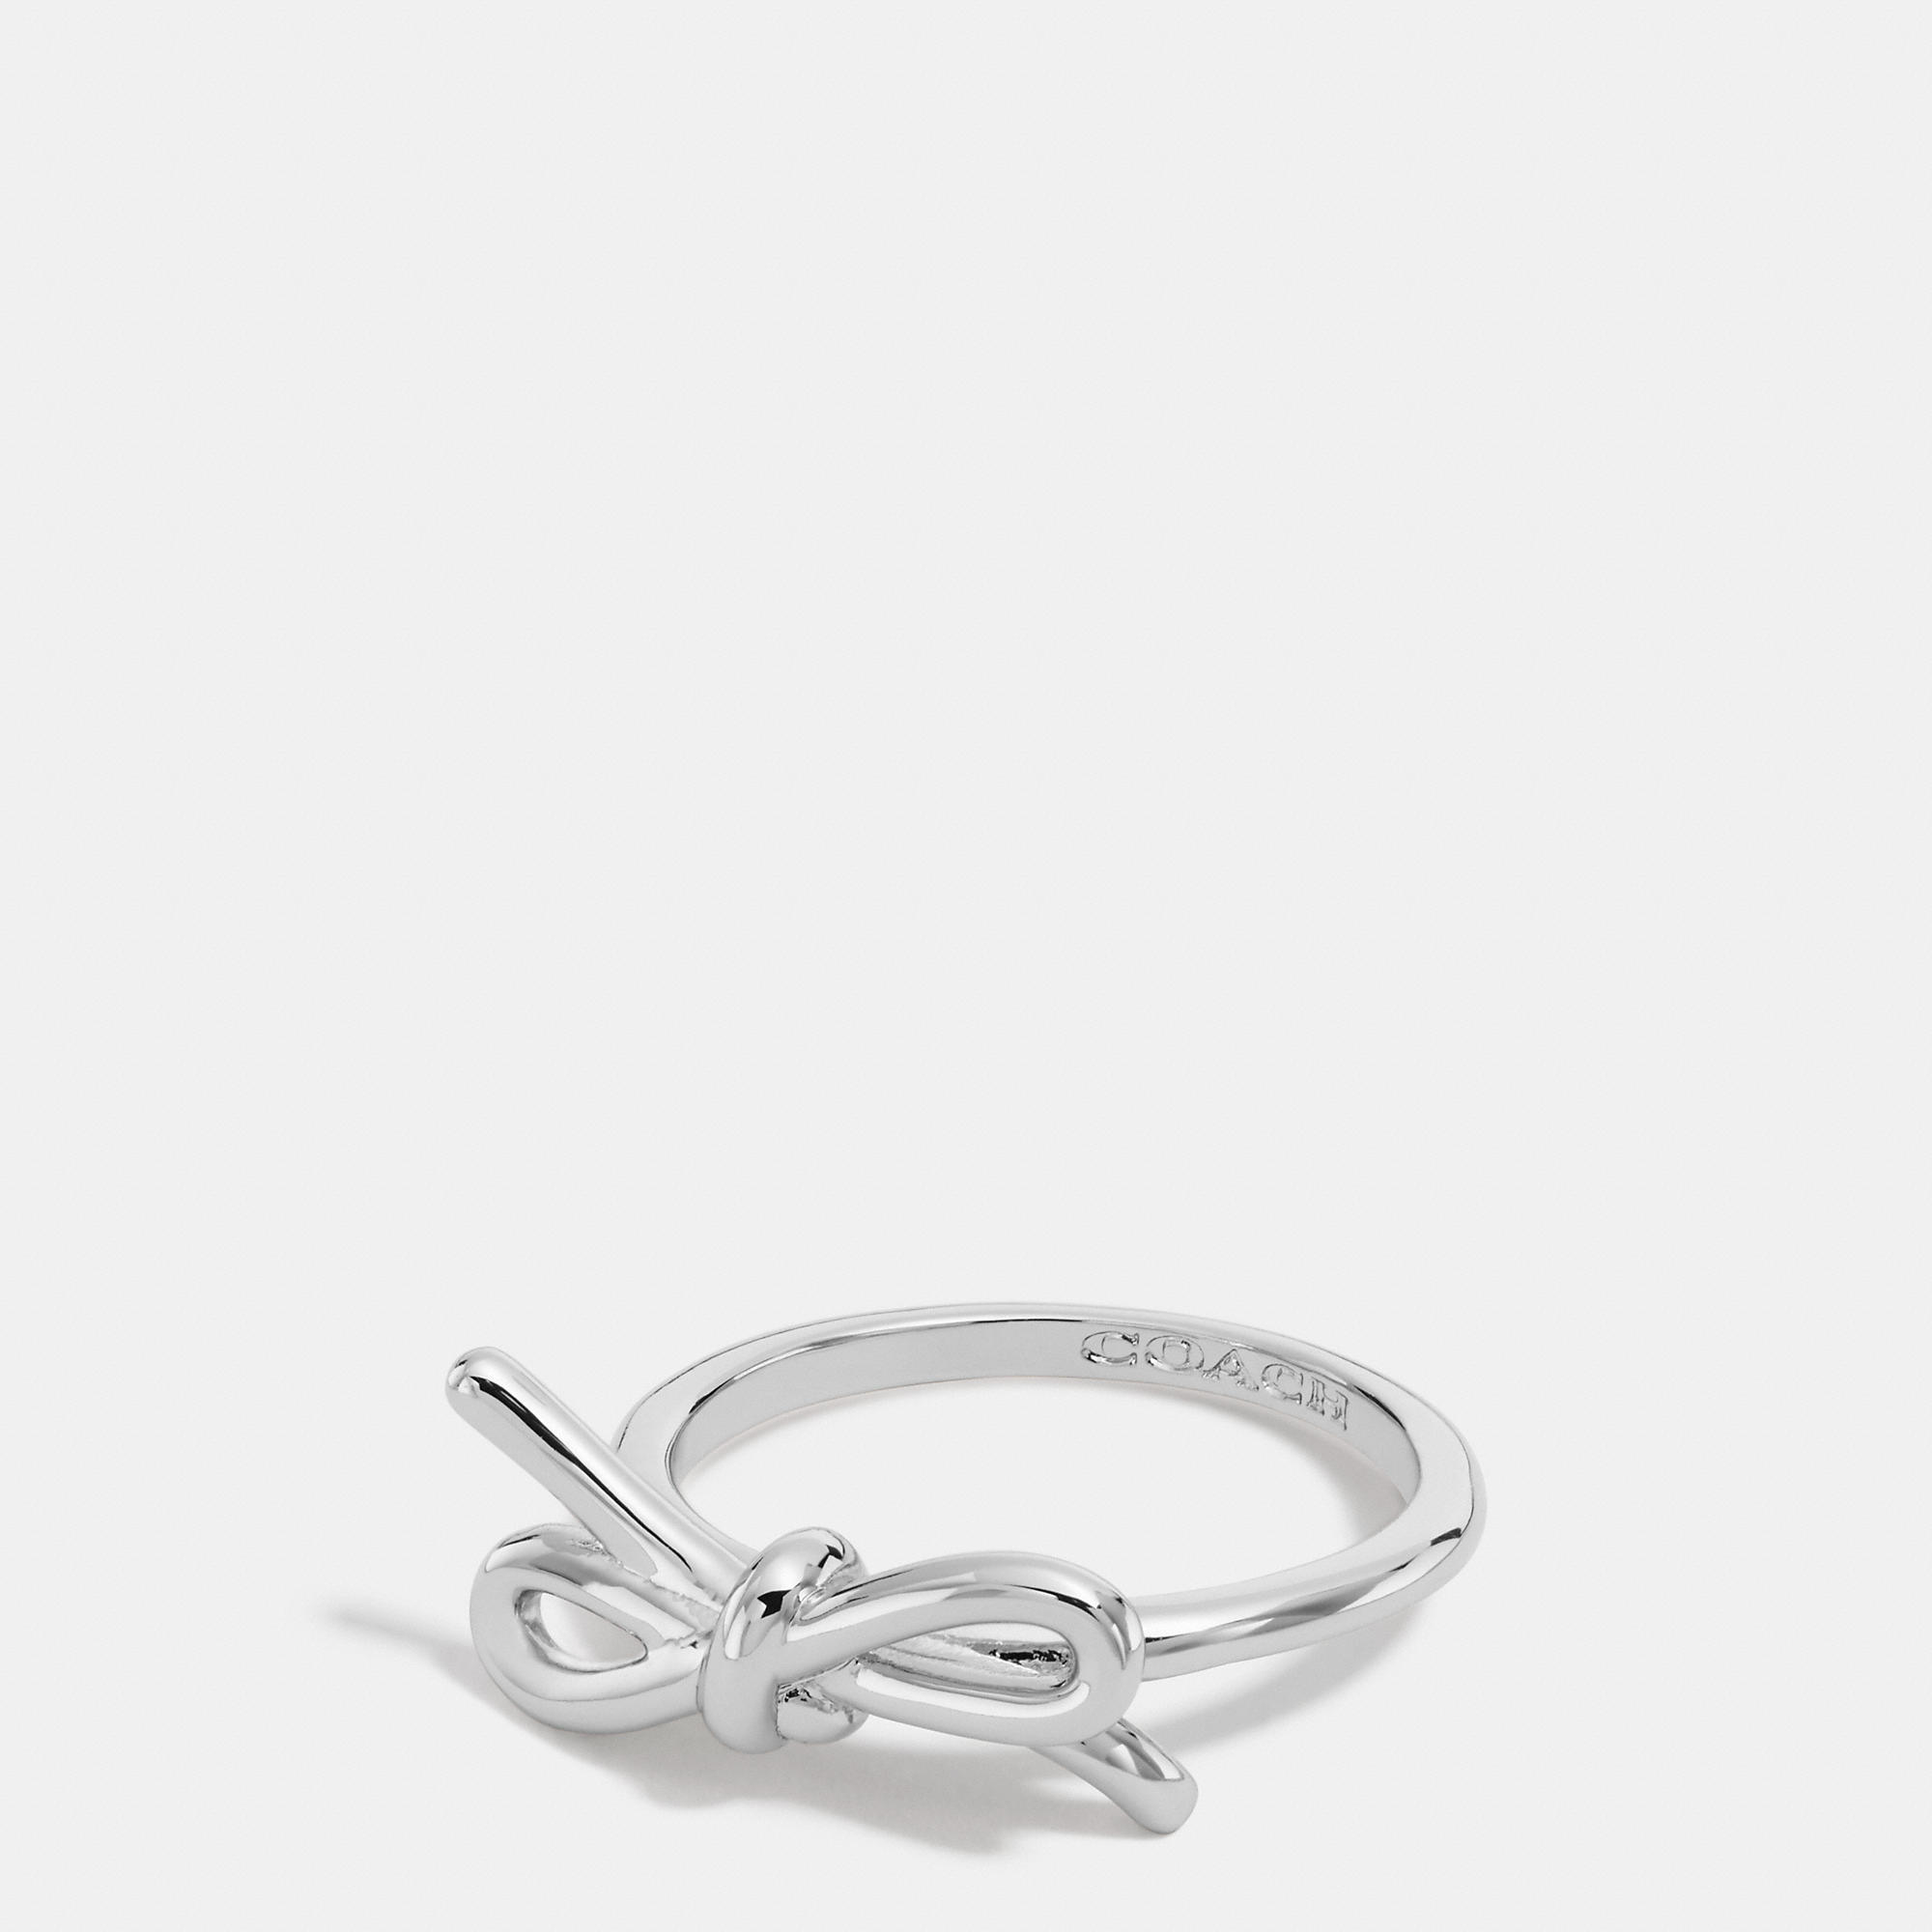 Coach Sterling Bow Ring in Metallic